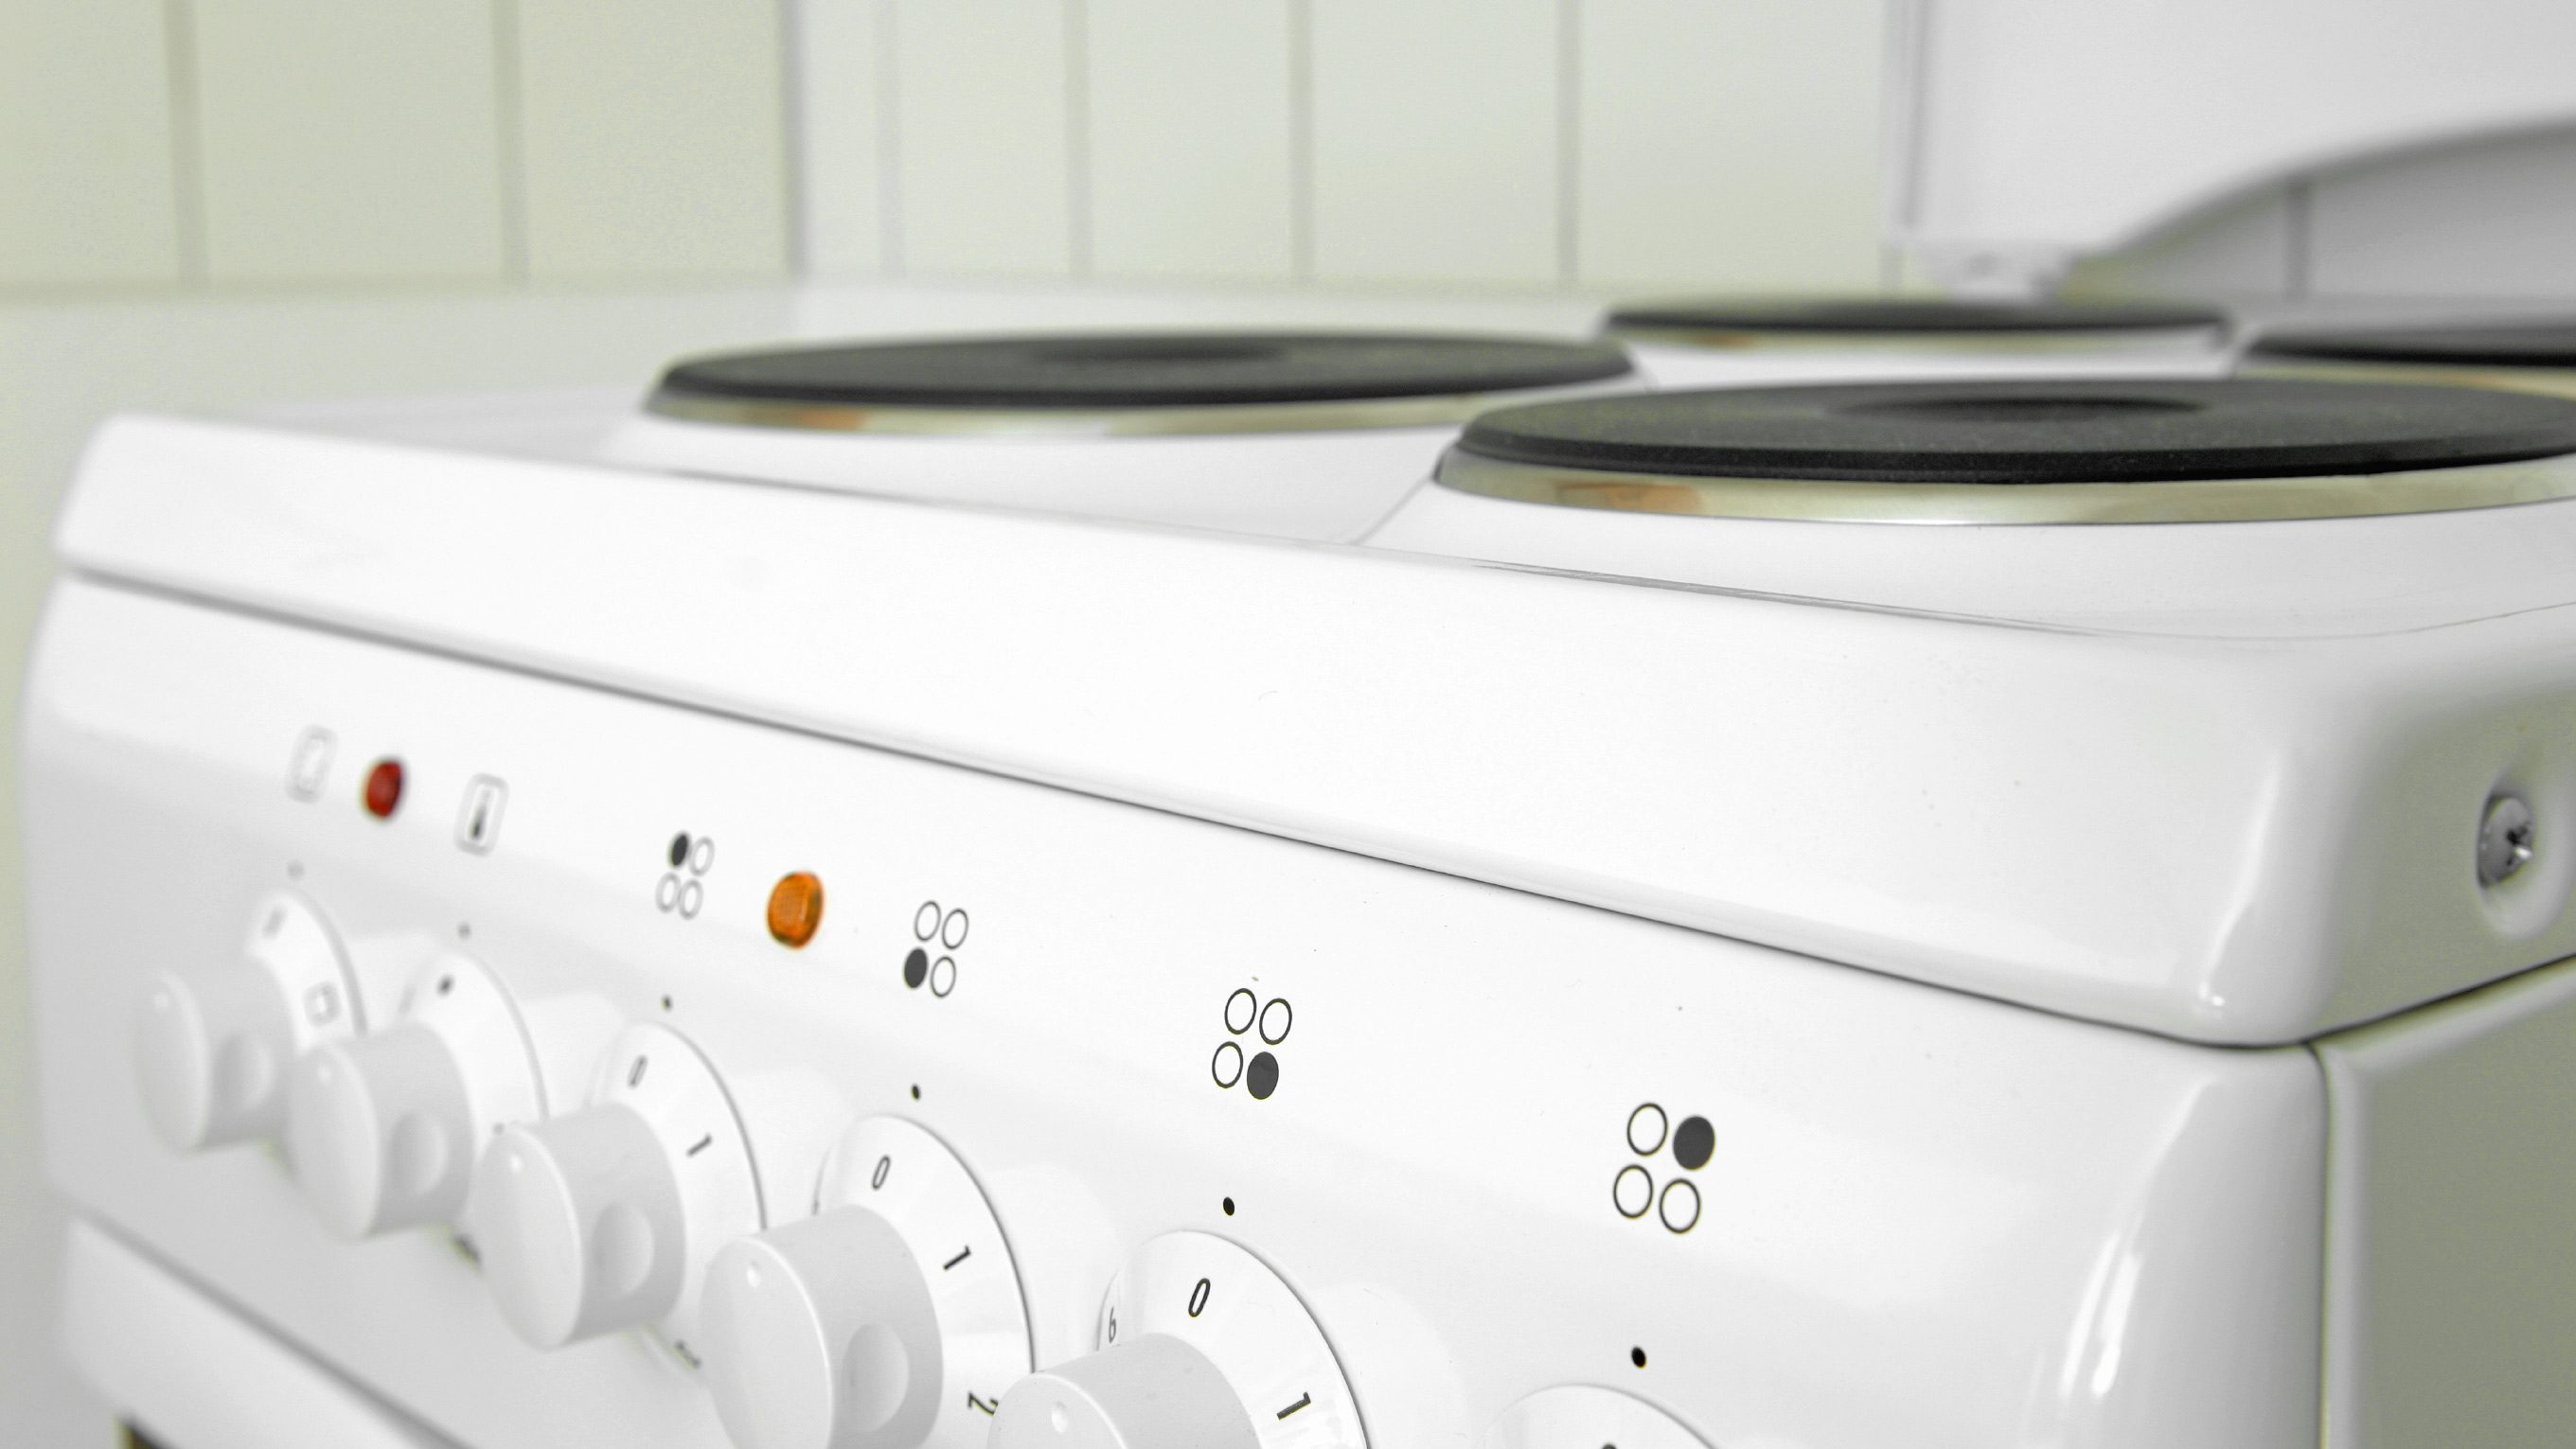 White stoves look outdated